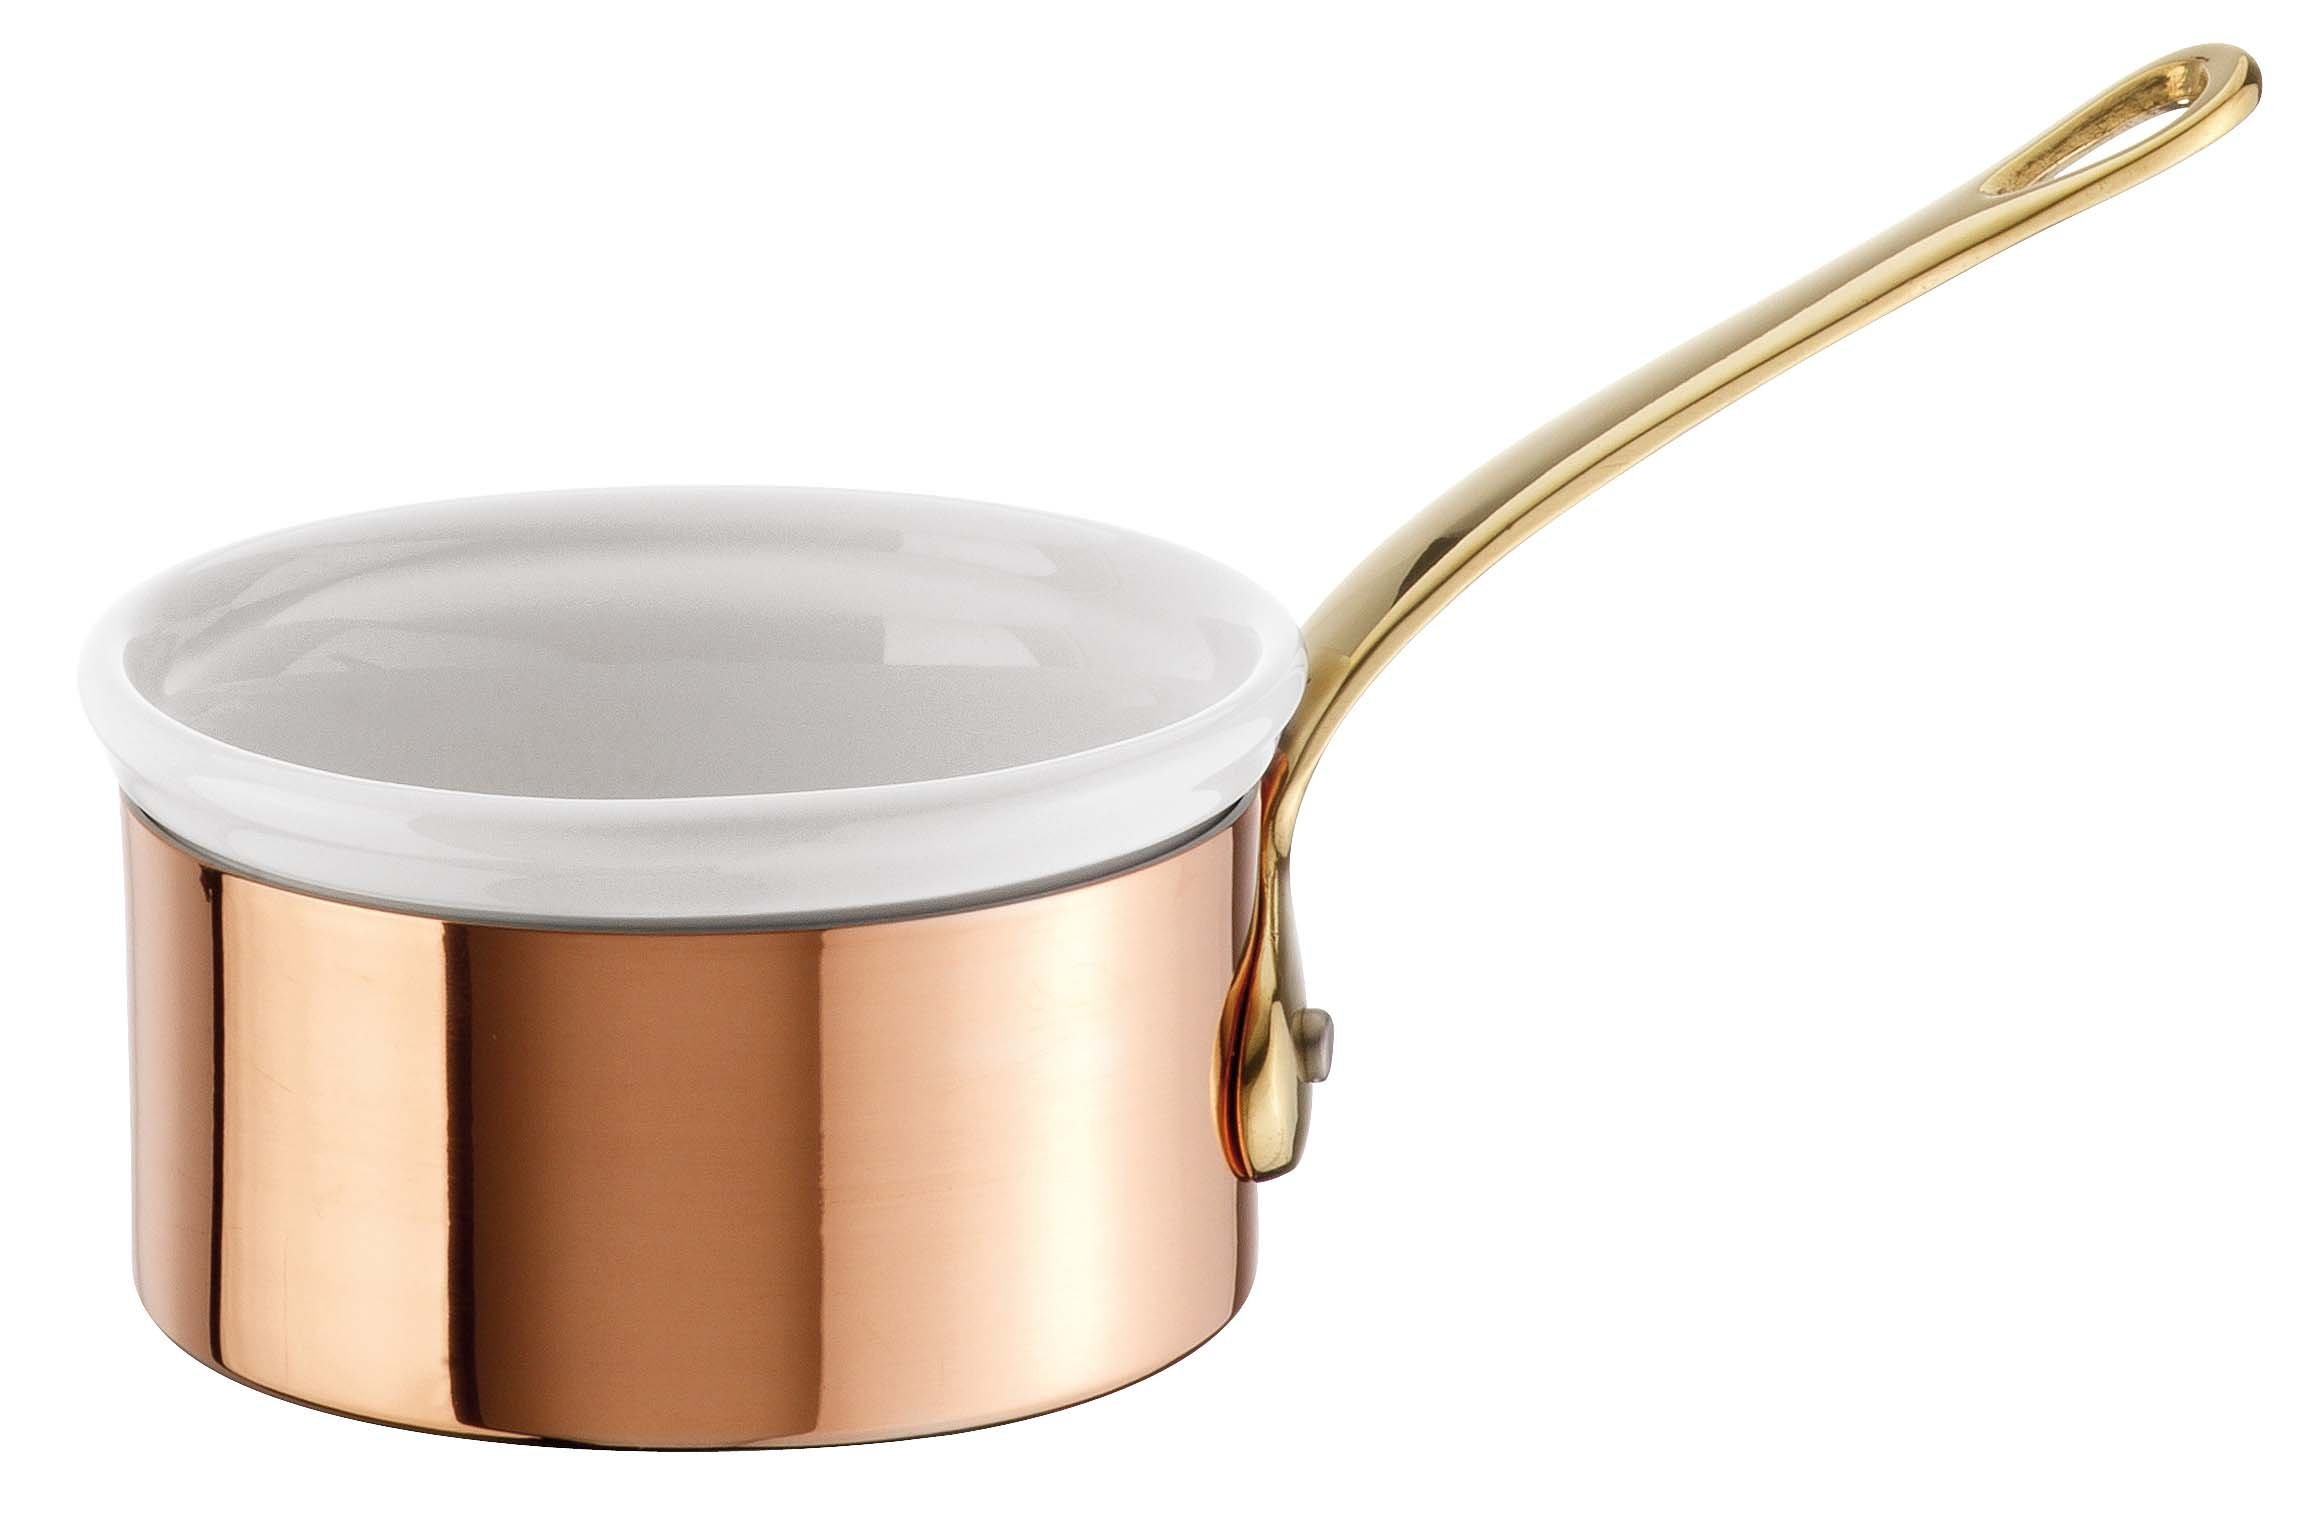 Paderno World Cuisine Mini Copper-Tin Butter Warmer with Porcelain Insert by Paderno World Cuisine